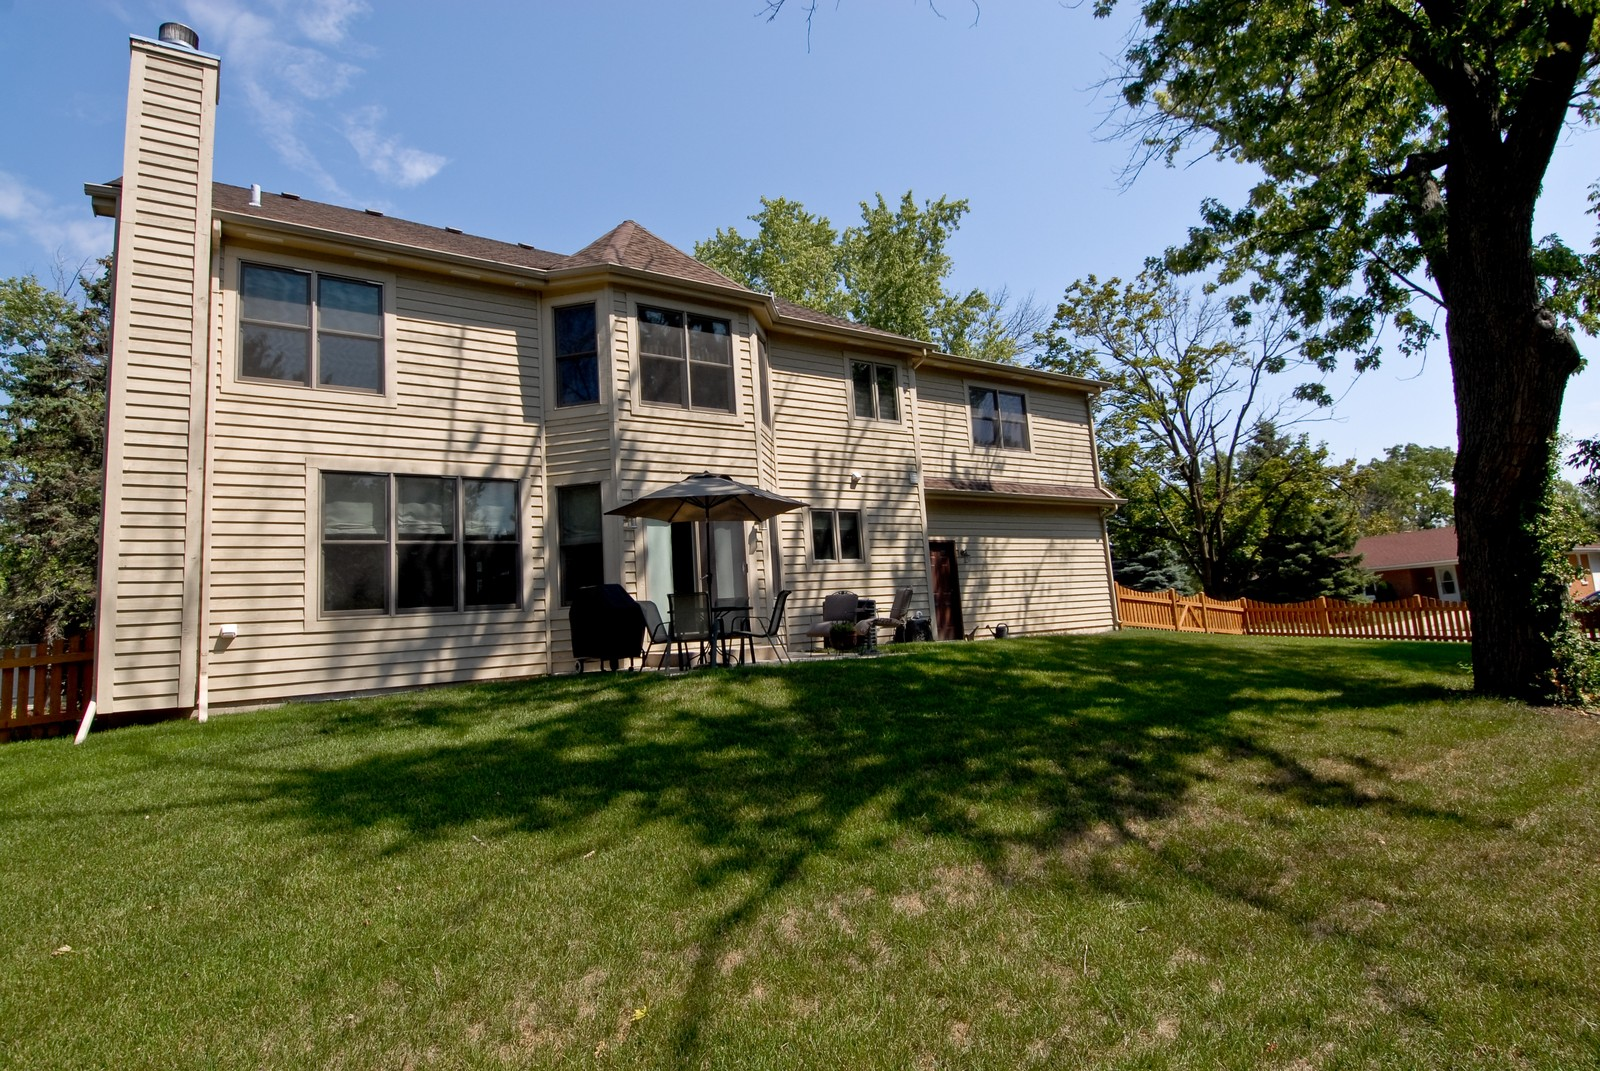 Real Estate Photography - 1221 Wing Ave, St. Charles, IL, 60174 - Rear View